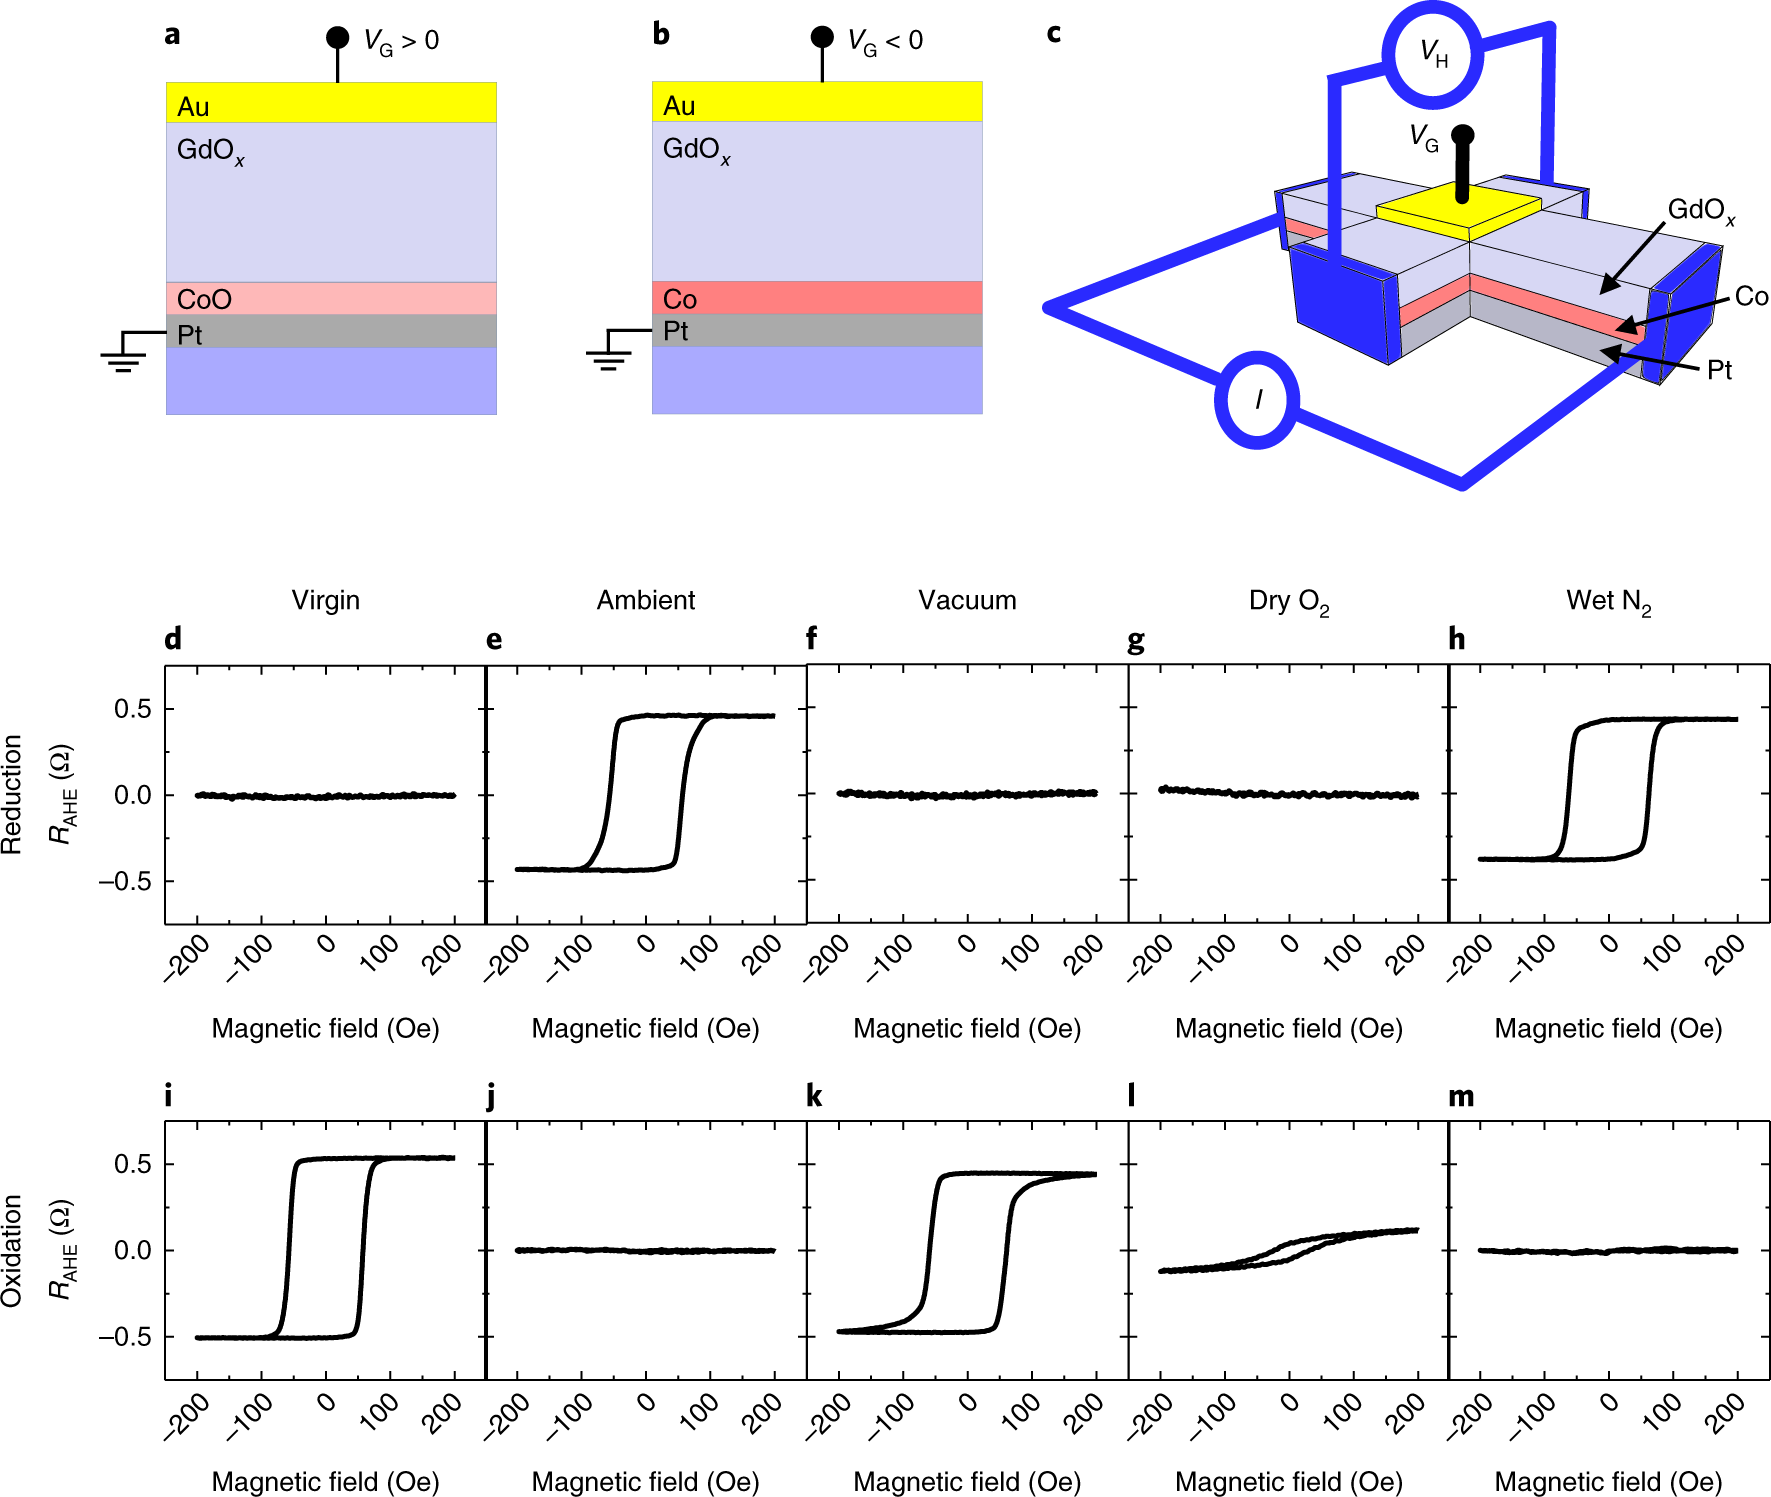 magneto-ionic control of magnetism using a solid-state proton pump | nature  materials